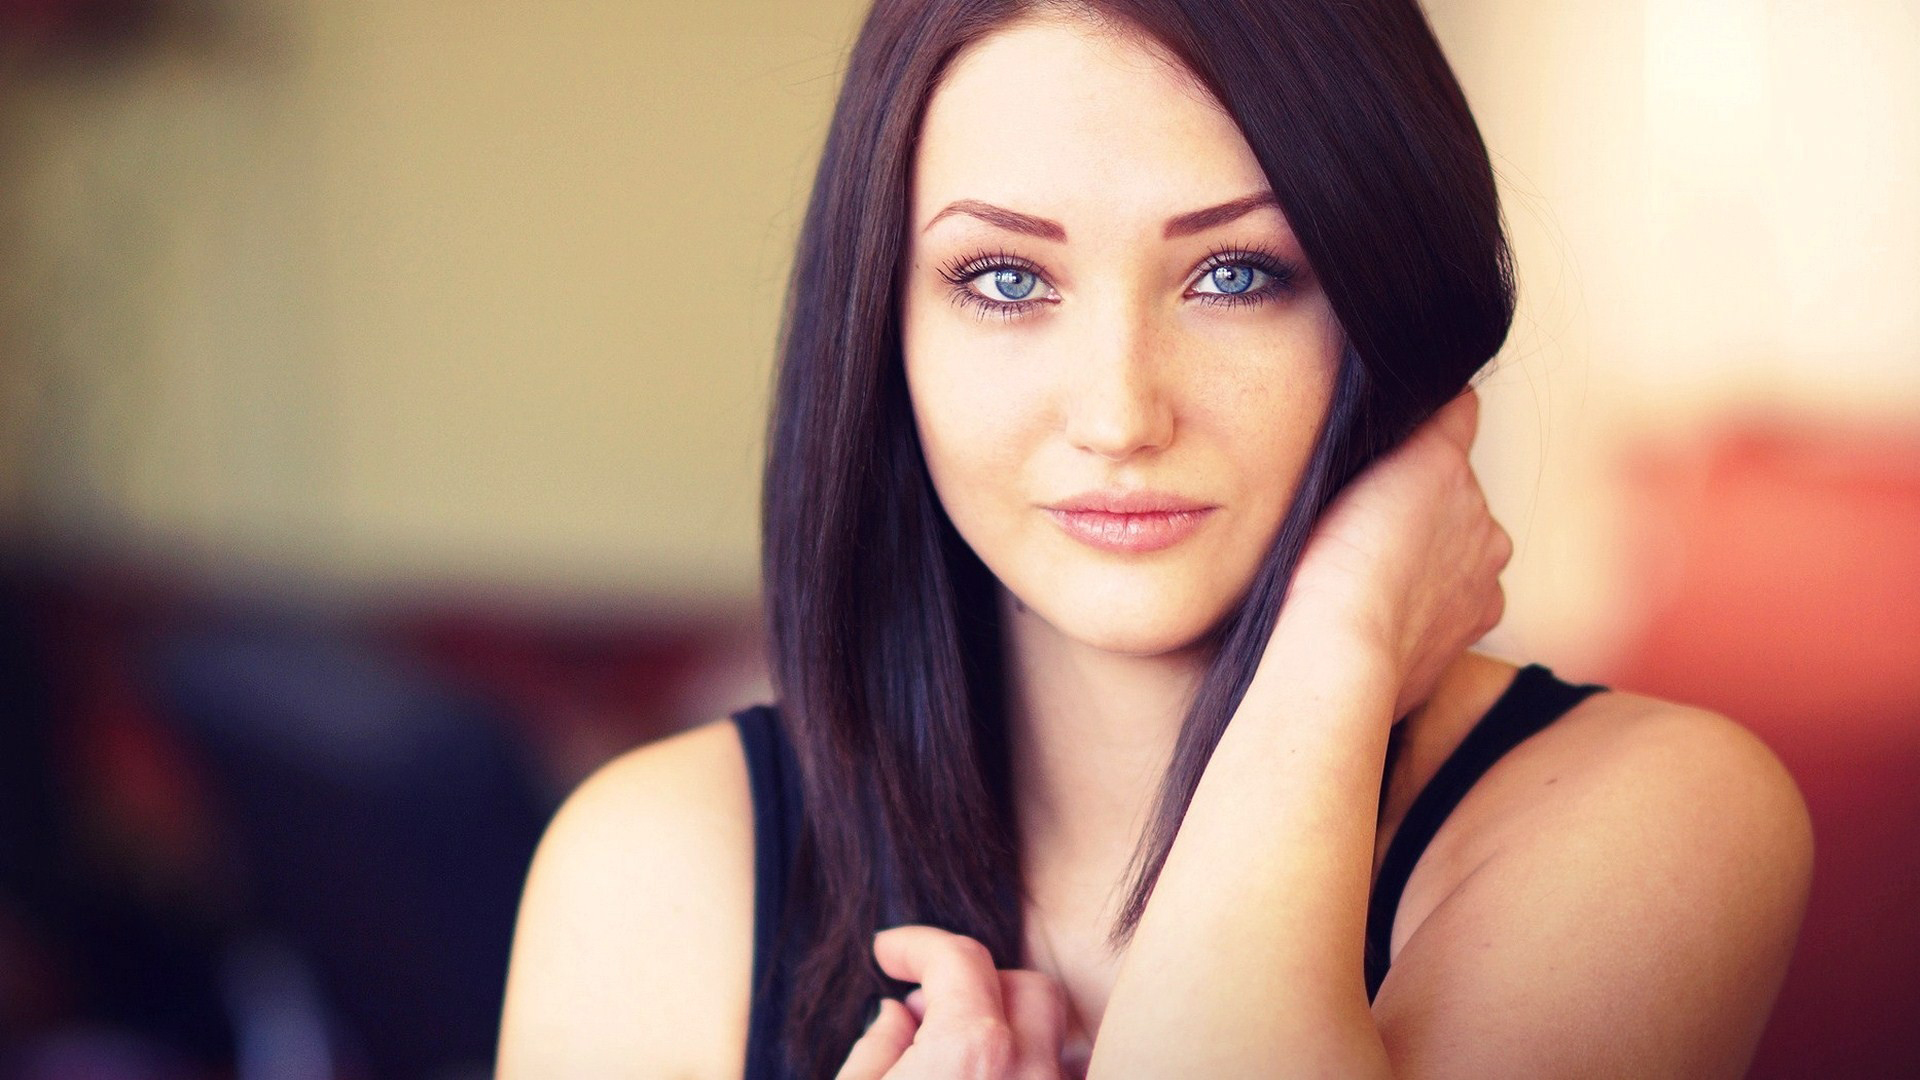 Brunette with blue eyes